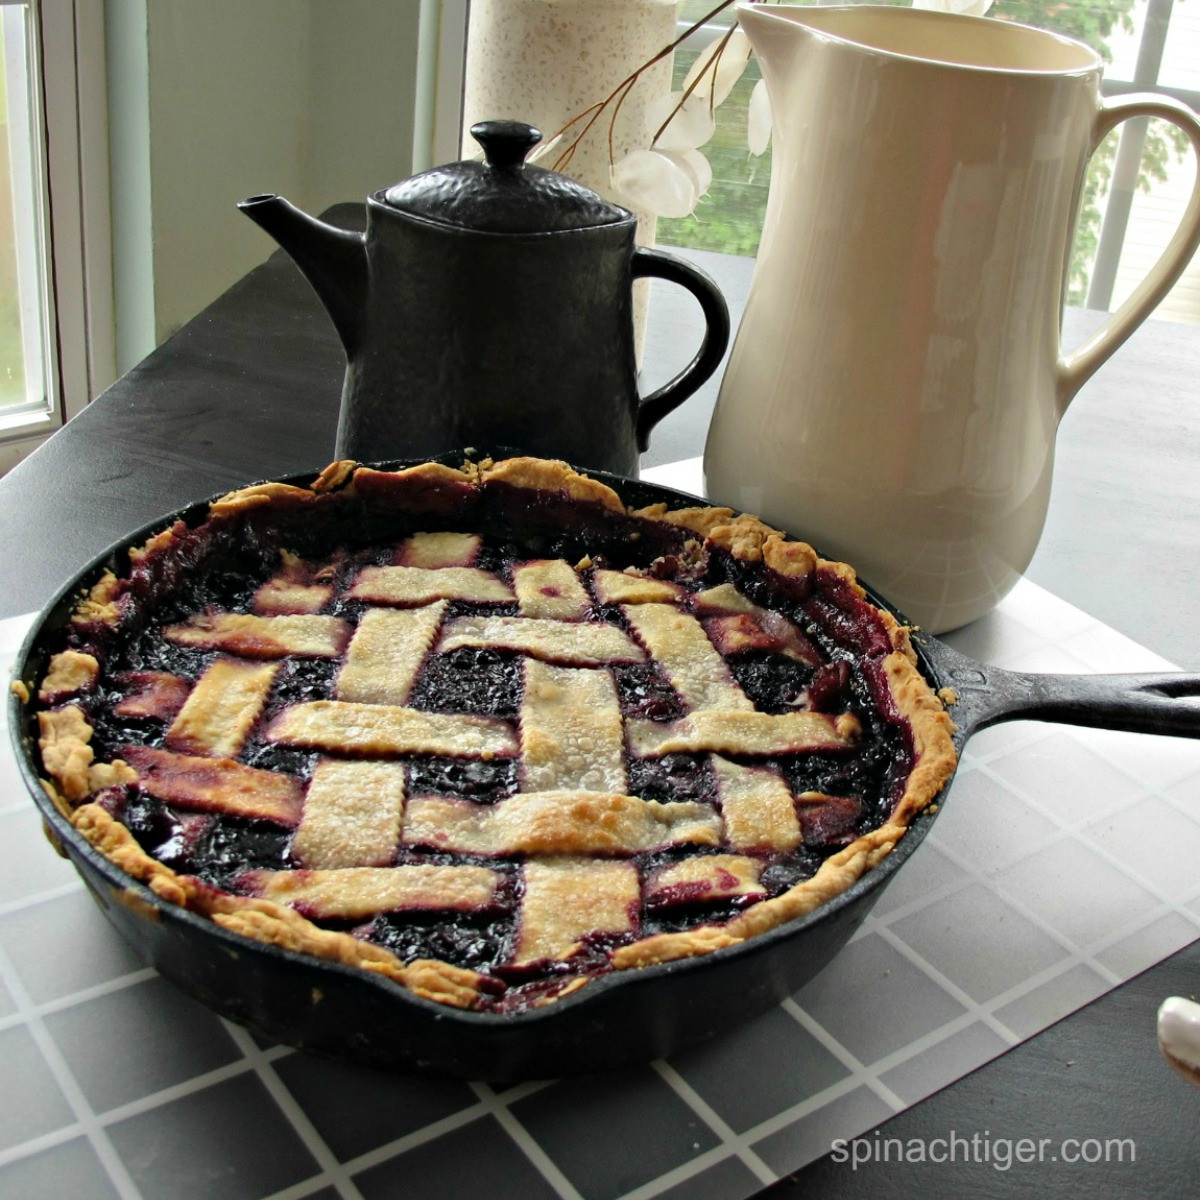 Blackberry Cobbler With Pie Crust  How to Make Blackberry Cobbler with Pie Crust in a Cast